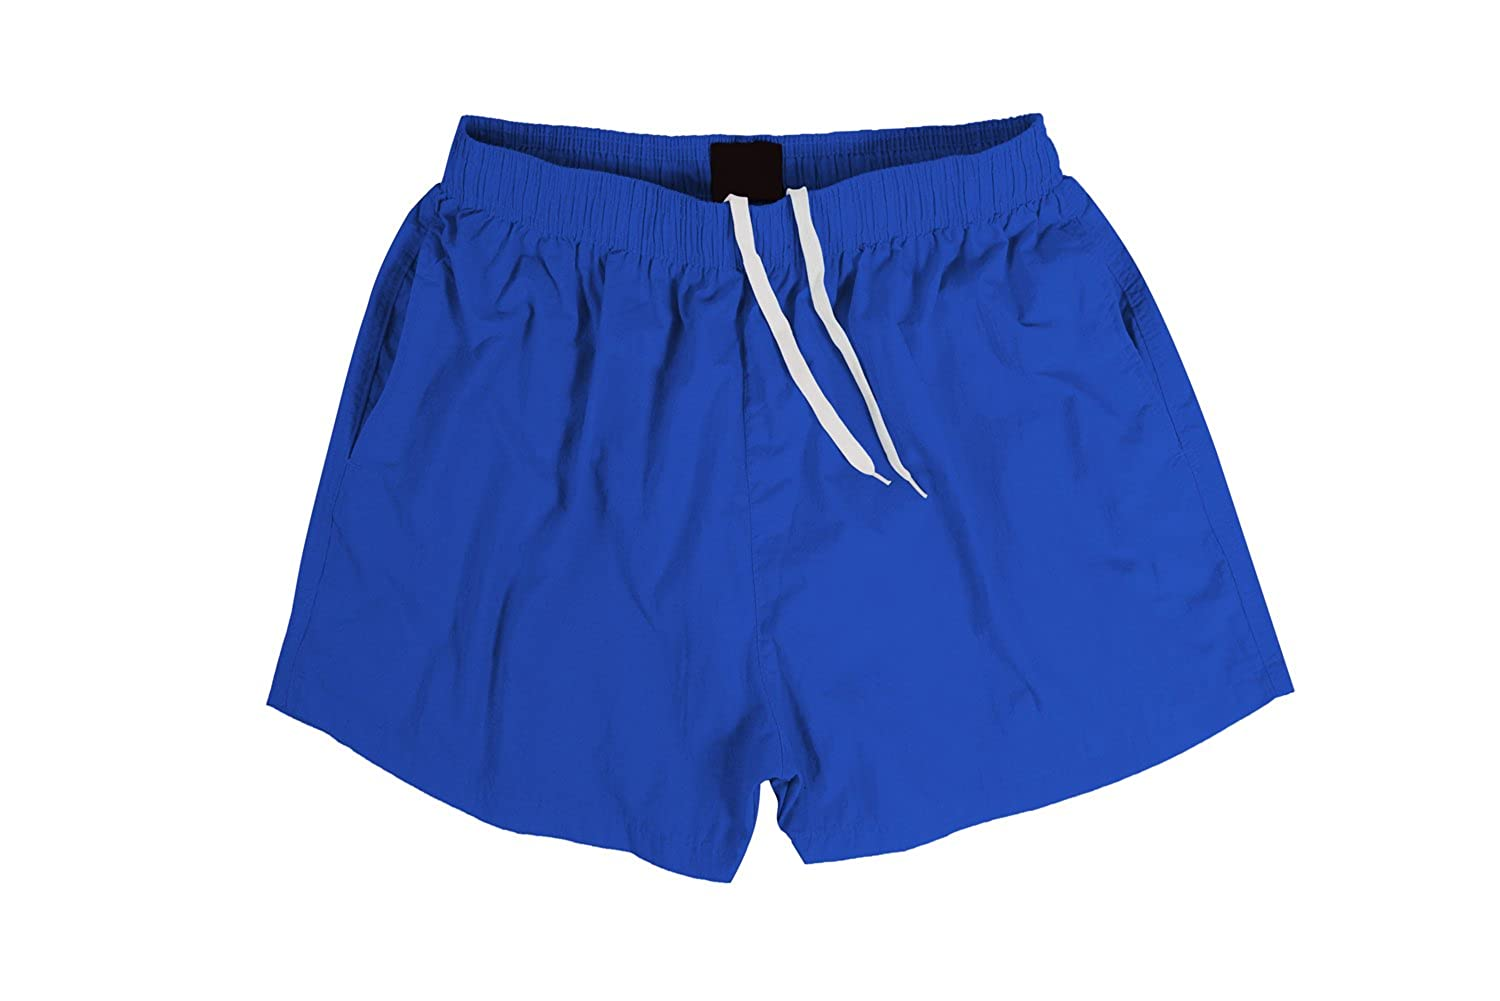 Sundayrose Men's Running Shorts Quick Dry Gym Training Shorts with Pockets A&A NDK002